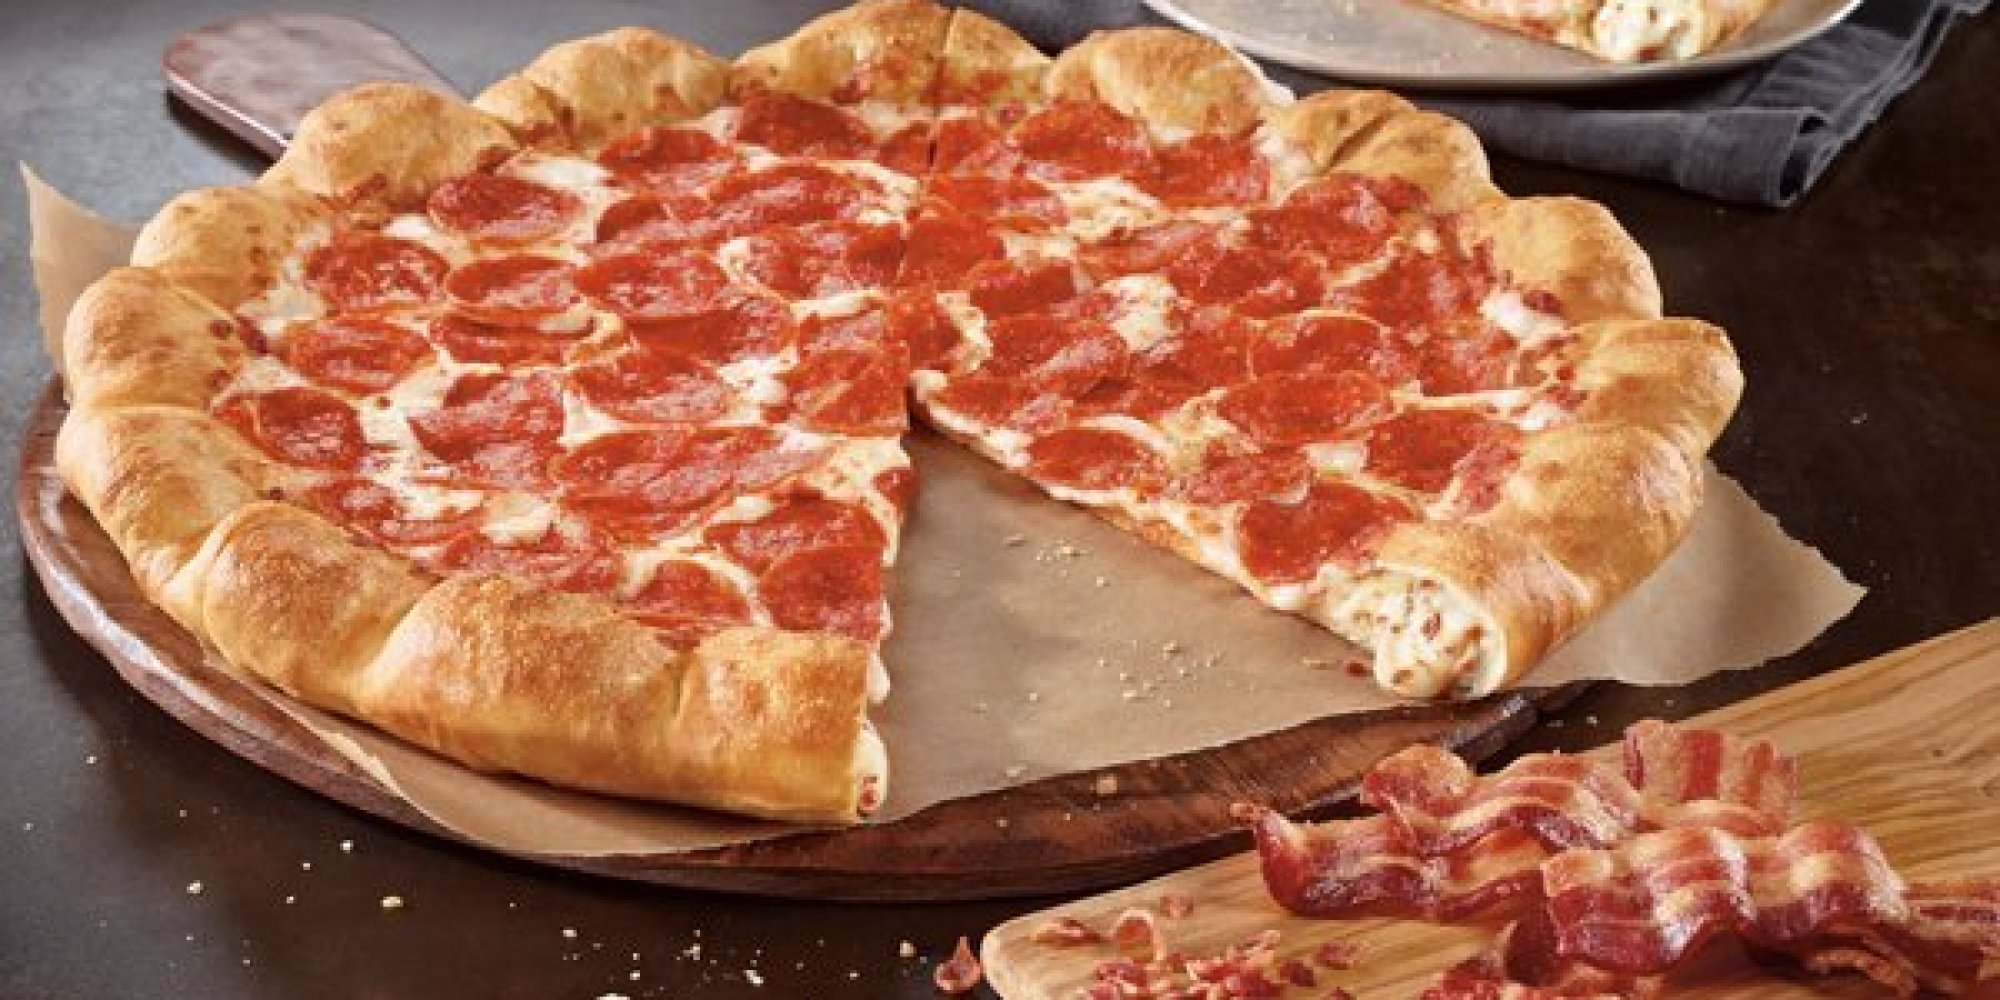 Pizza Hut Introduces Pizza With Bacon AND Cheese In The ... Stuffed Crust Pizza